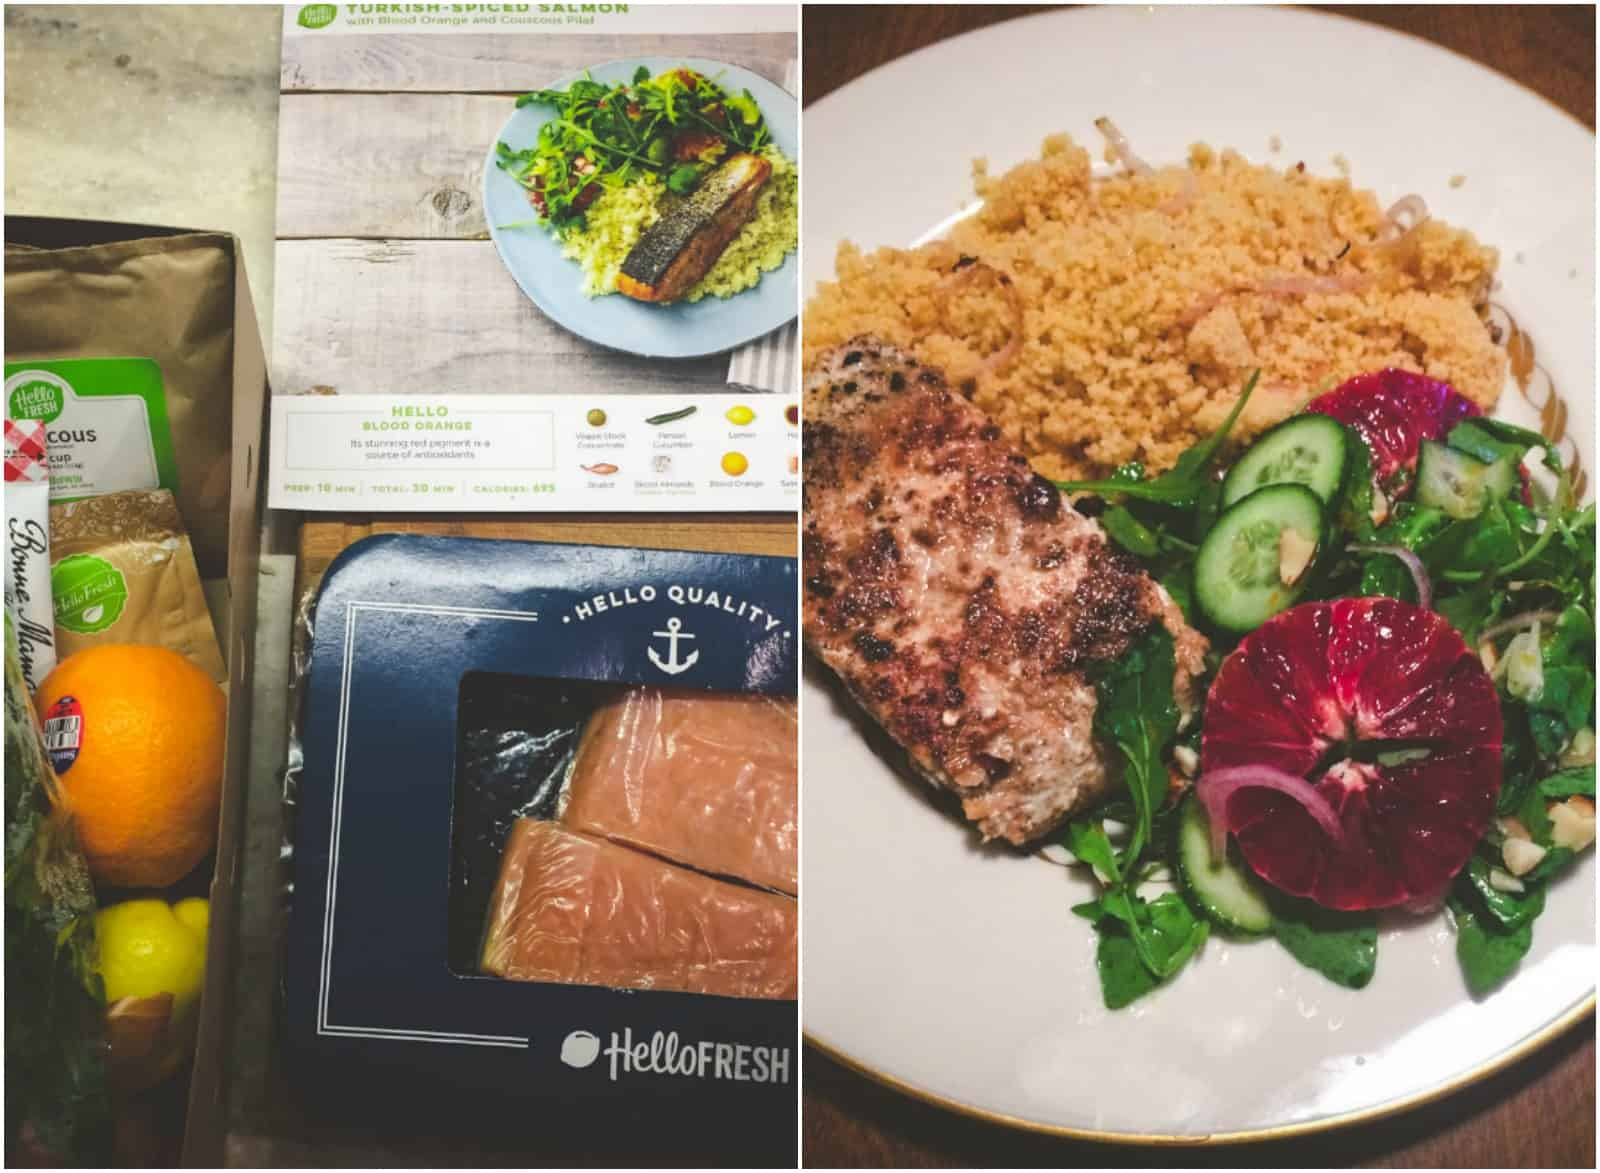 Buy  Hellofresh Meal Kit Delivery Service How Much It Cost